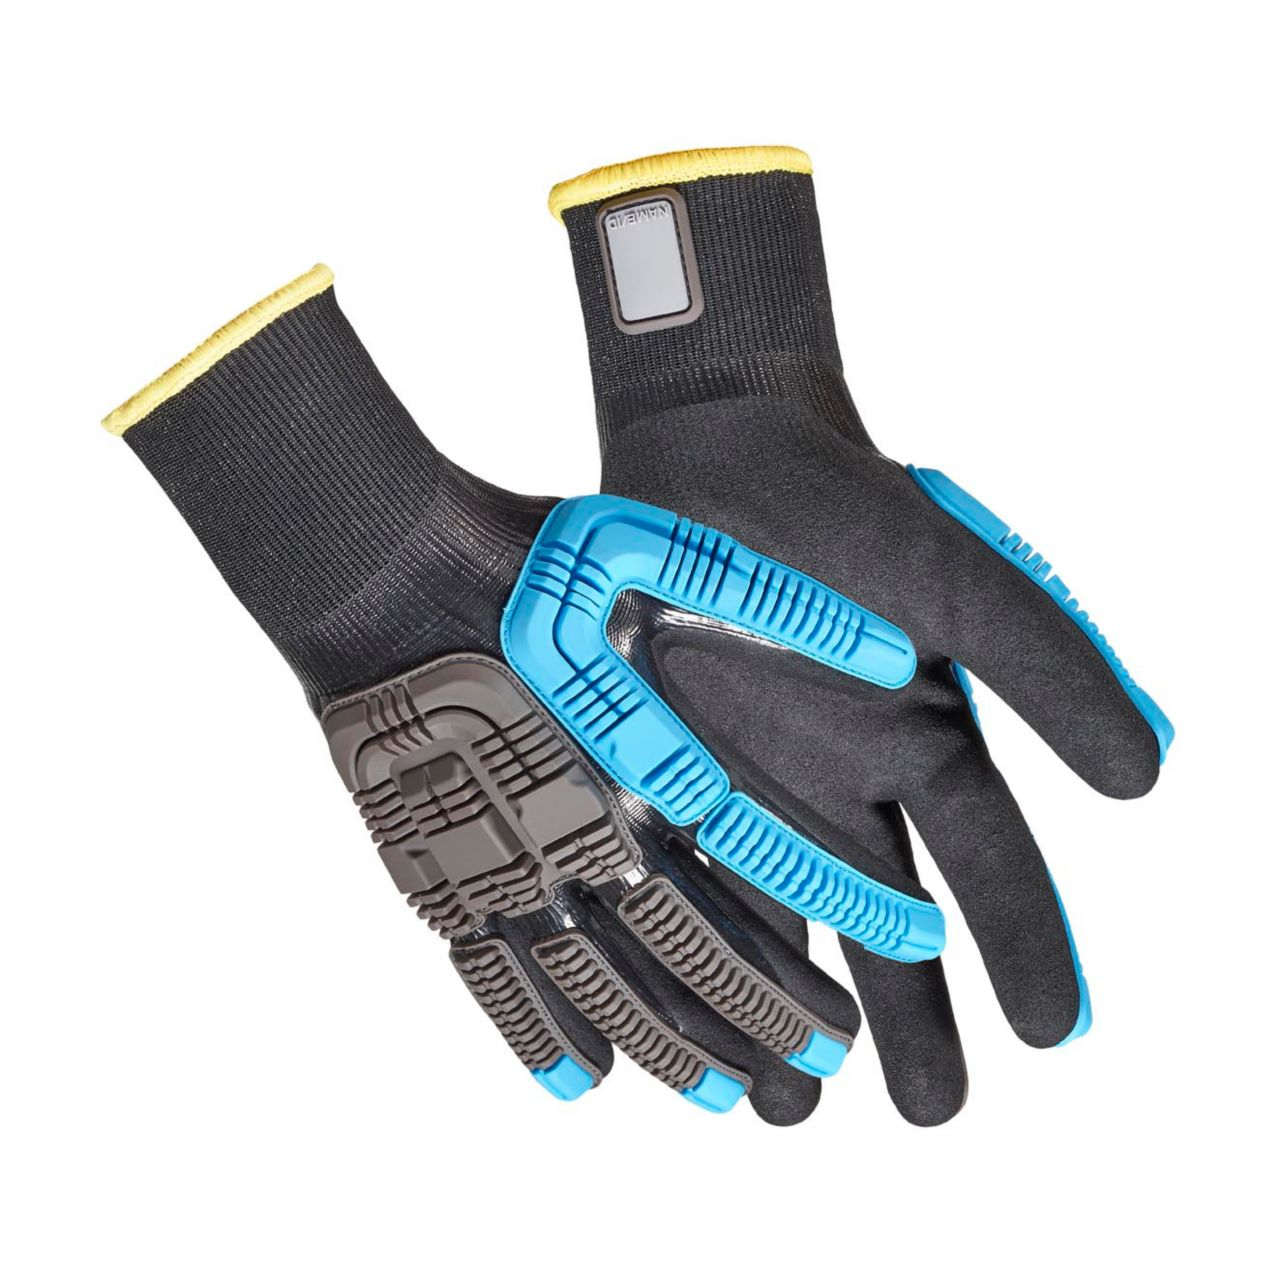 sps-his-2332913-41-4438bl-hon-rig-dog-knit-water-resistant-pair-2